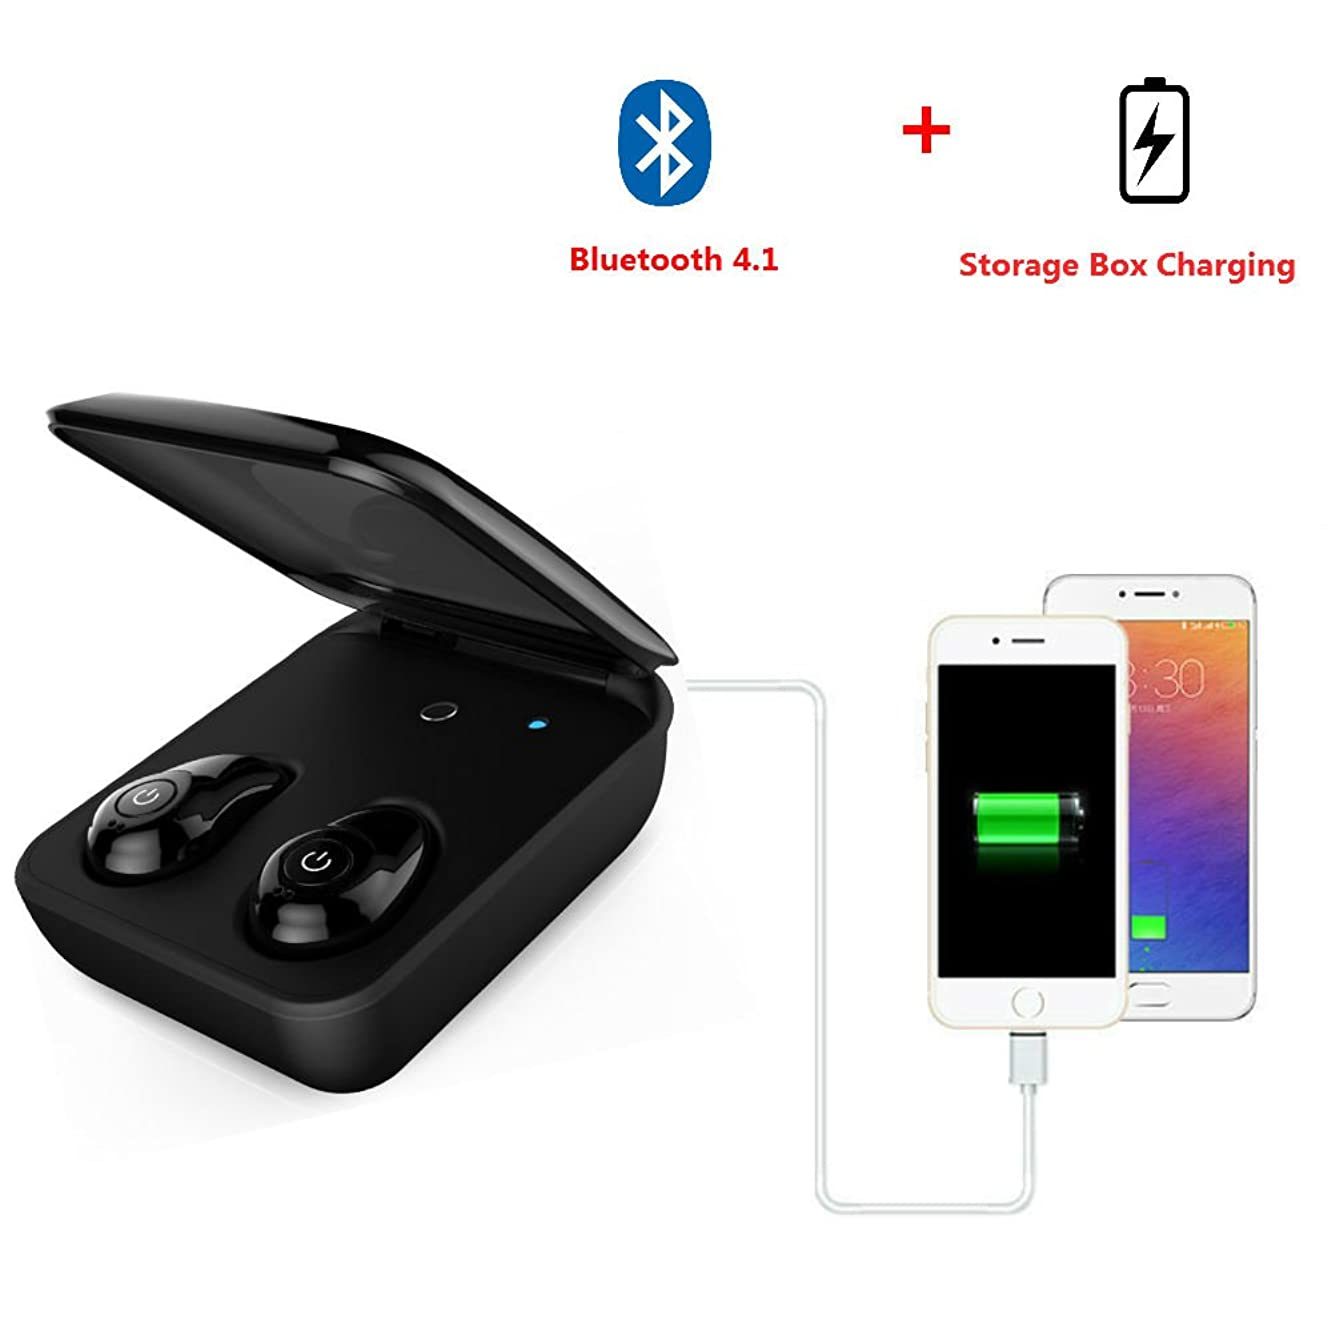 Hangang Mini HIFI Wireless Headset Sports Earbud Wireless Bluetooth Earphone Cable-Free Earbuds Sport In-Ear Headset Sweatproof Headphones Handsfree Earbud with Charging Box For android/IOS(black)